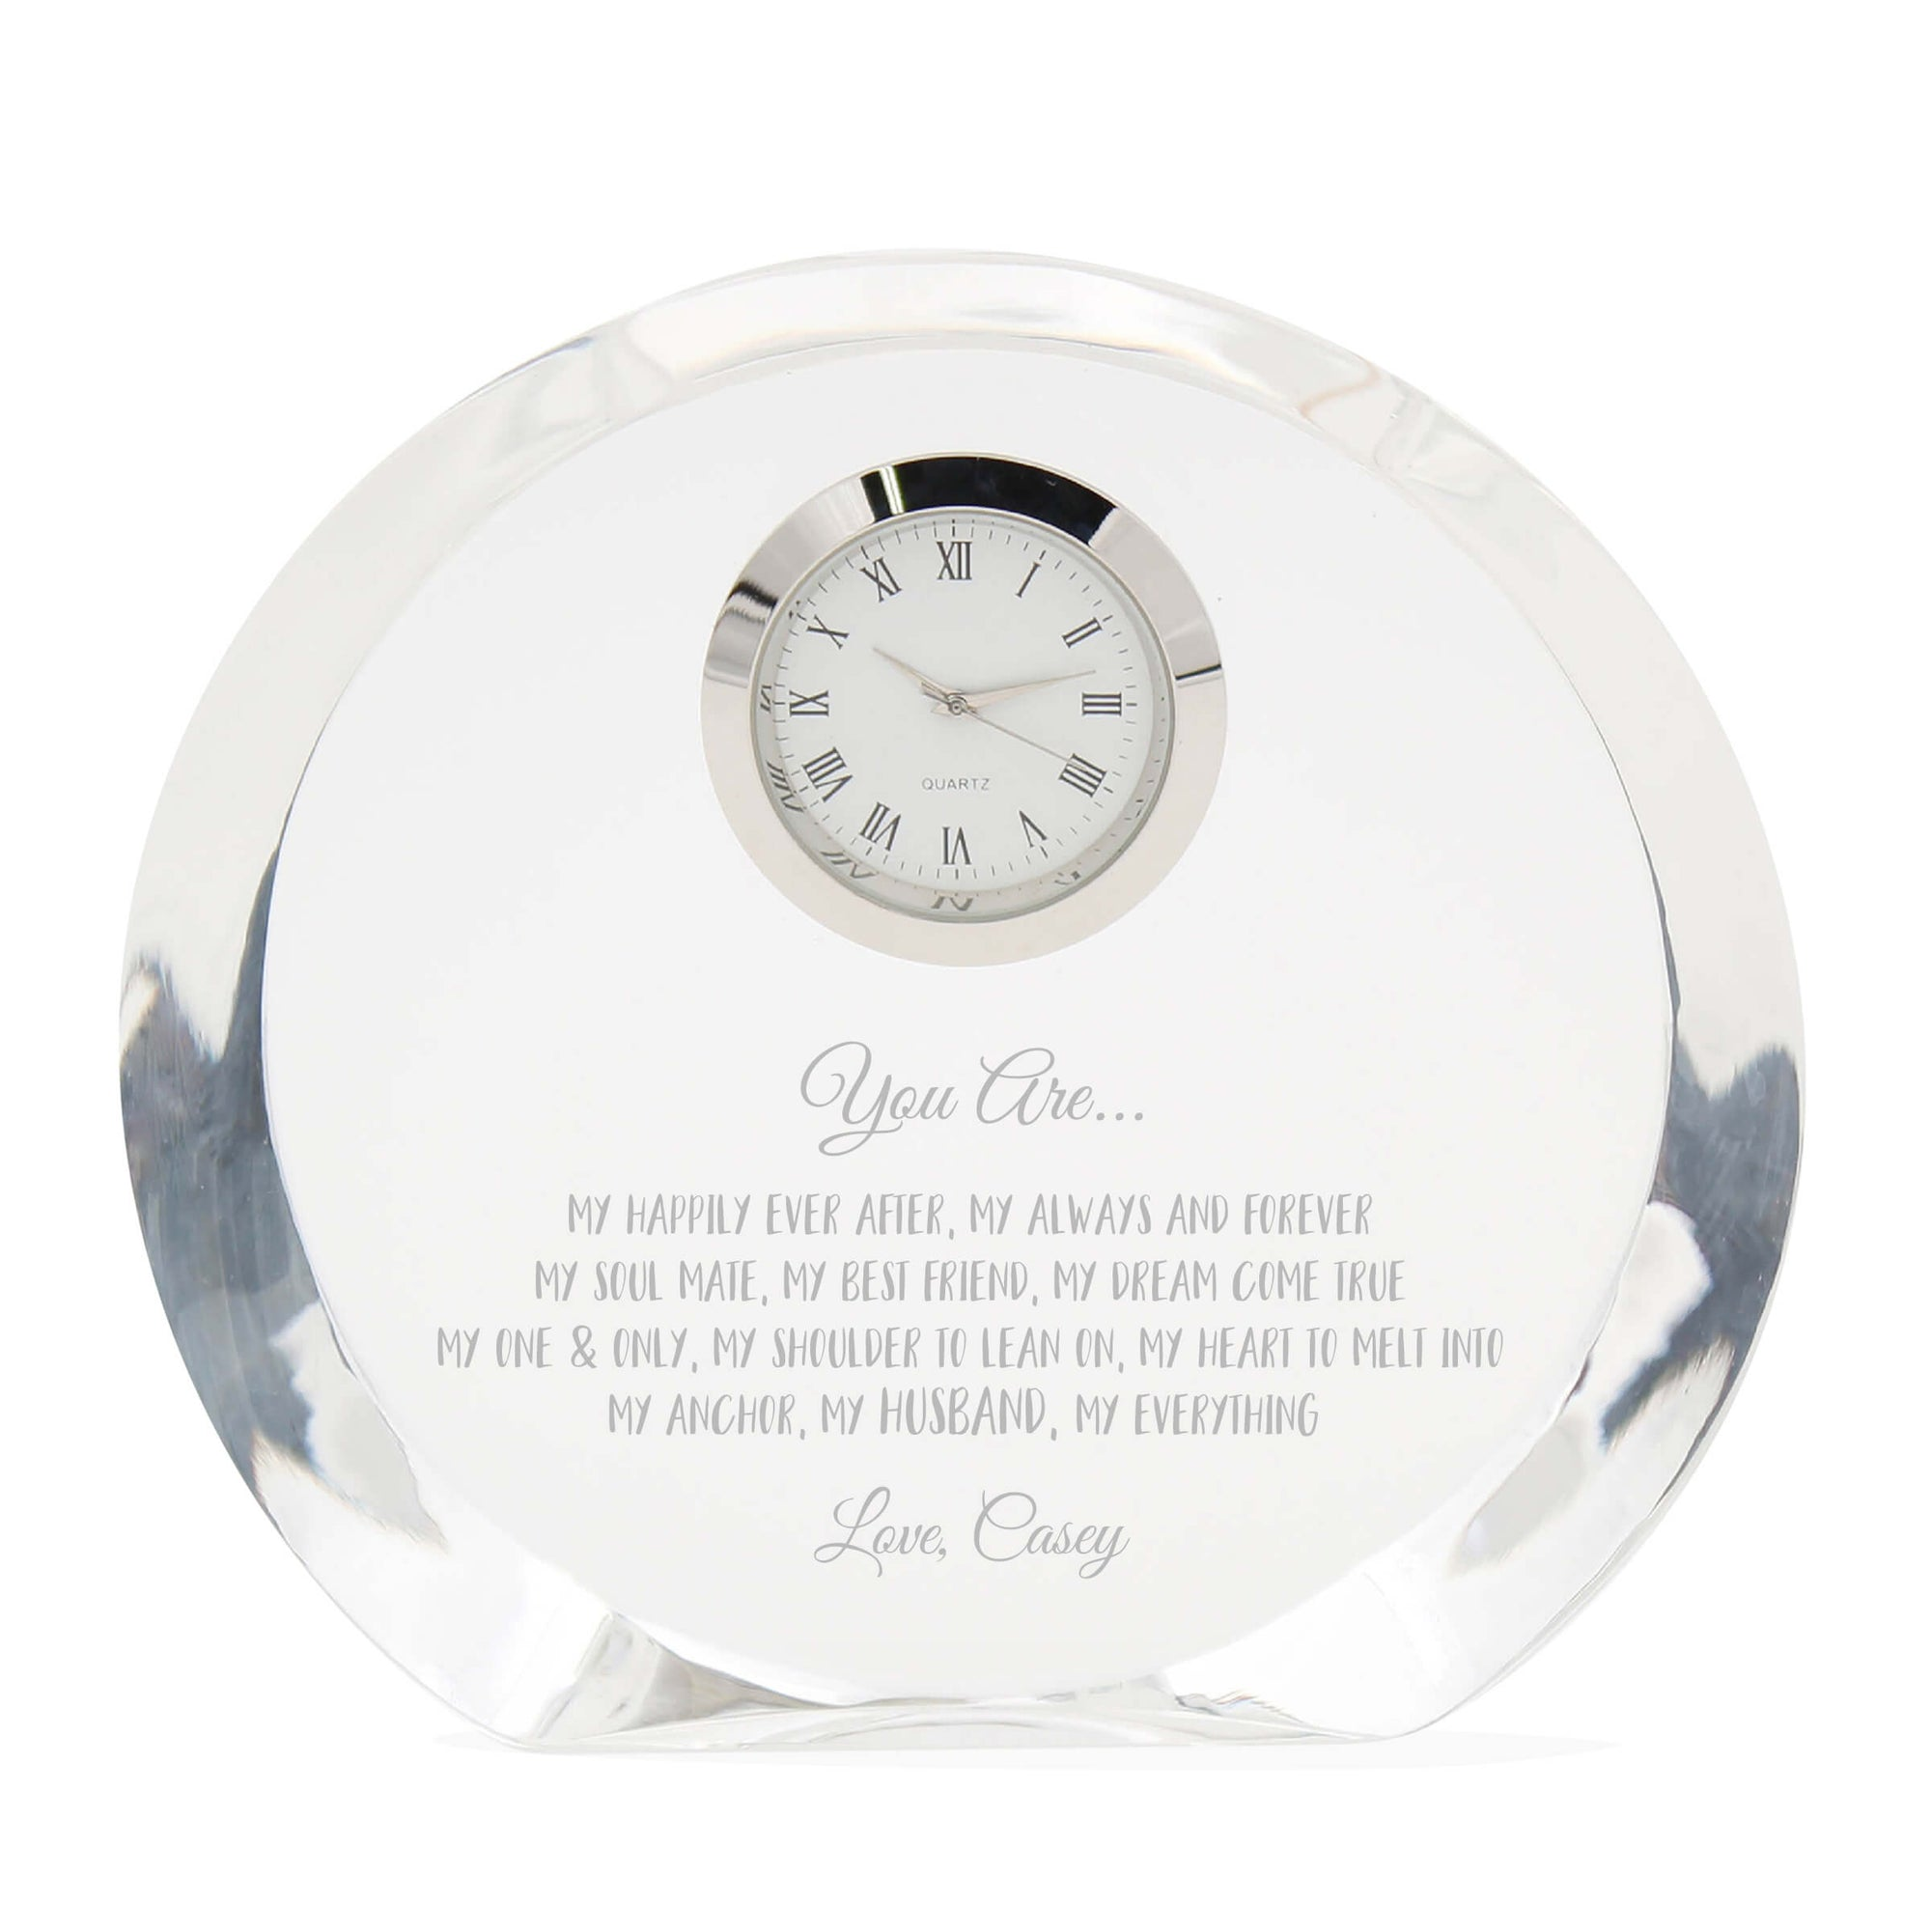 My Happily Ever After Crystal Clock